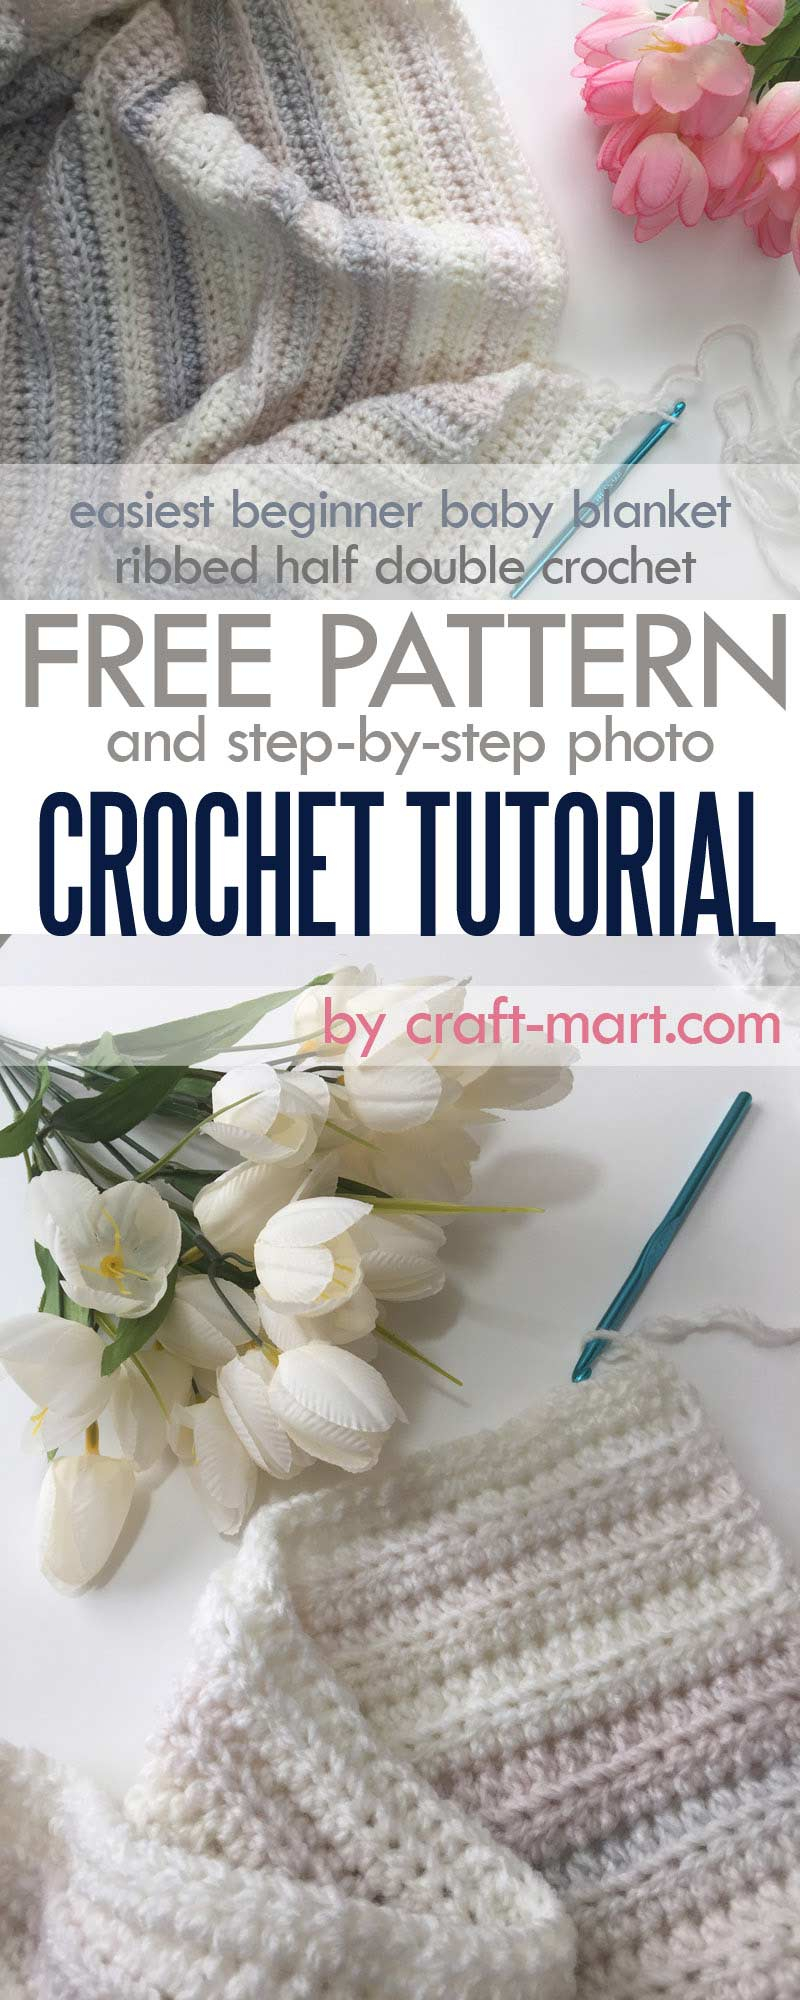 Ribbed half double crochet easiest beginner crochet baby blanket free pattern and step-by-step tutorial